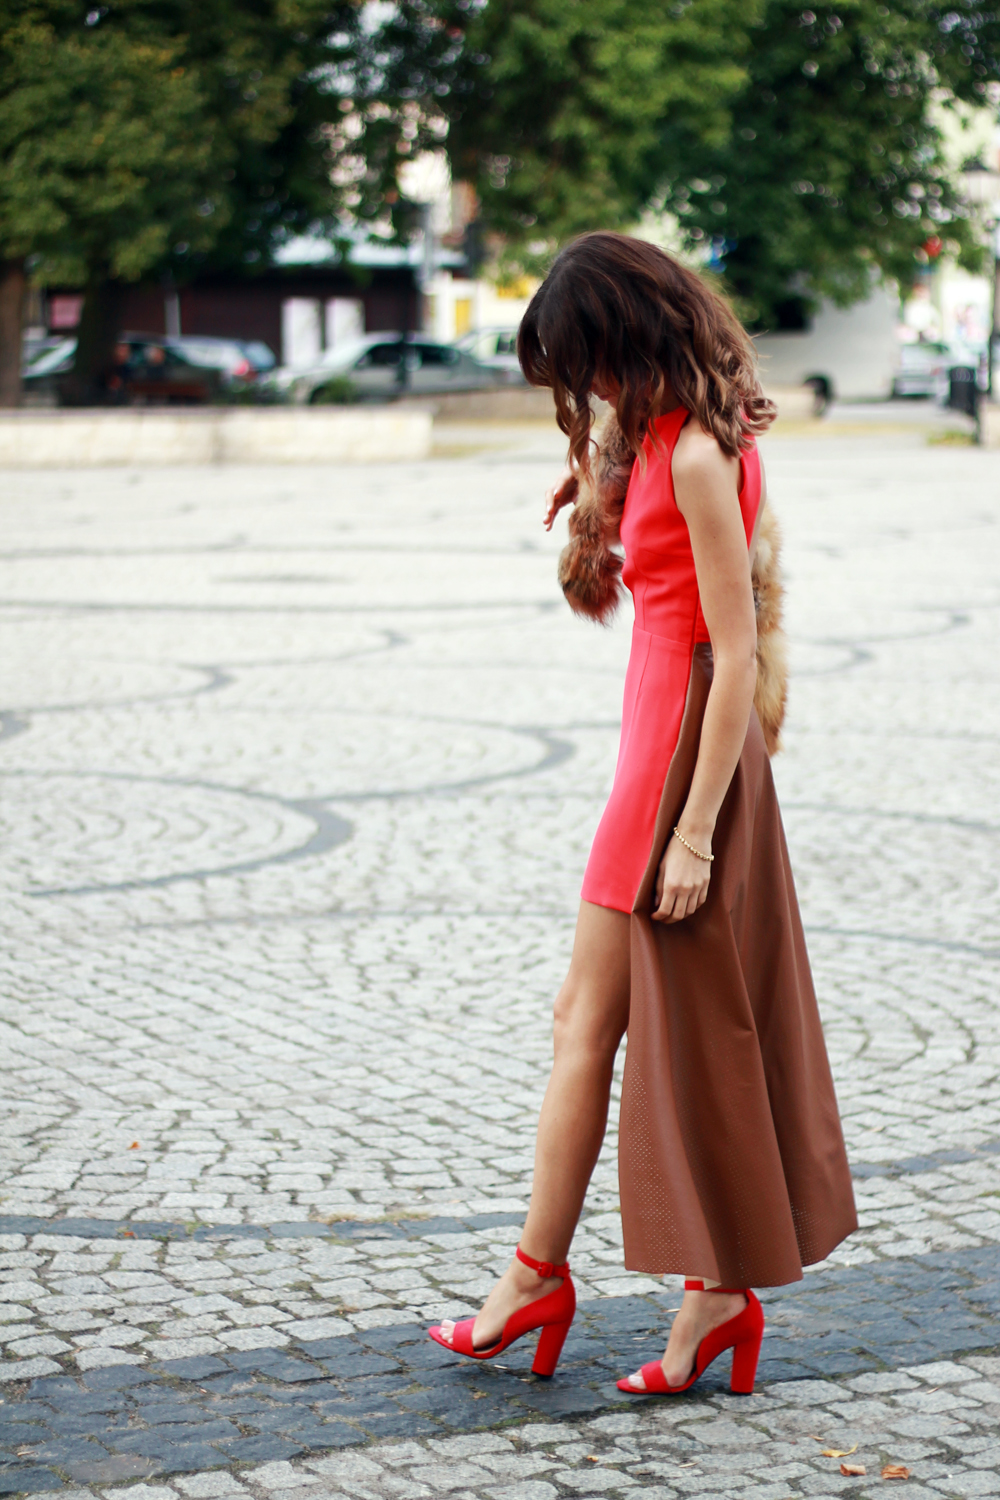 red dress original chic outfit clothes tumblr fashion girl